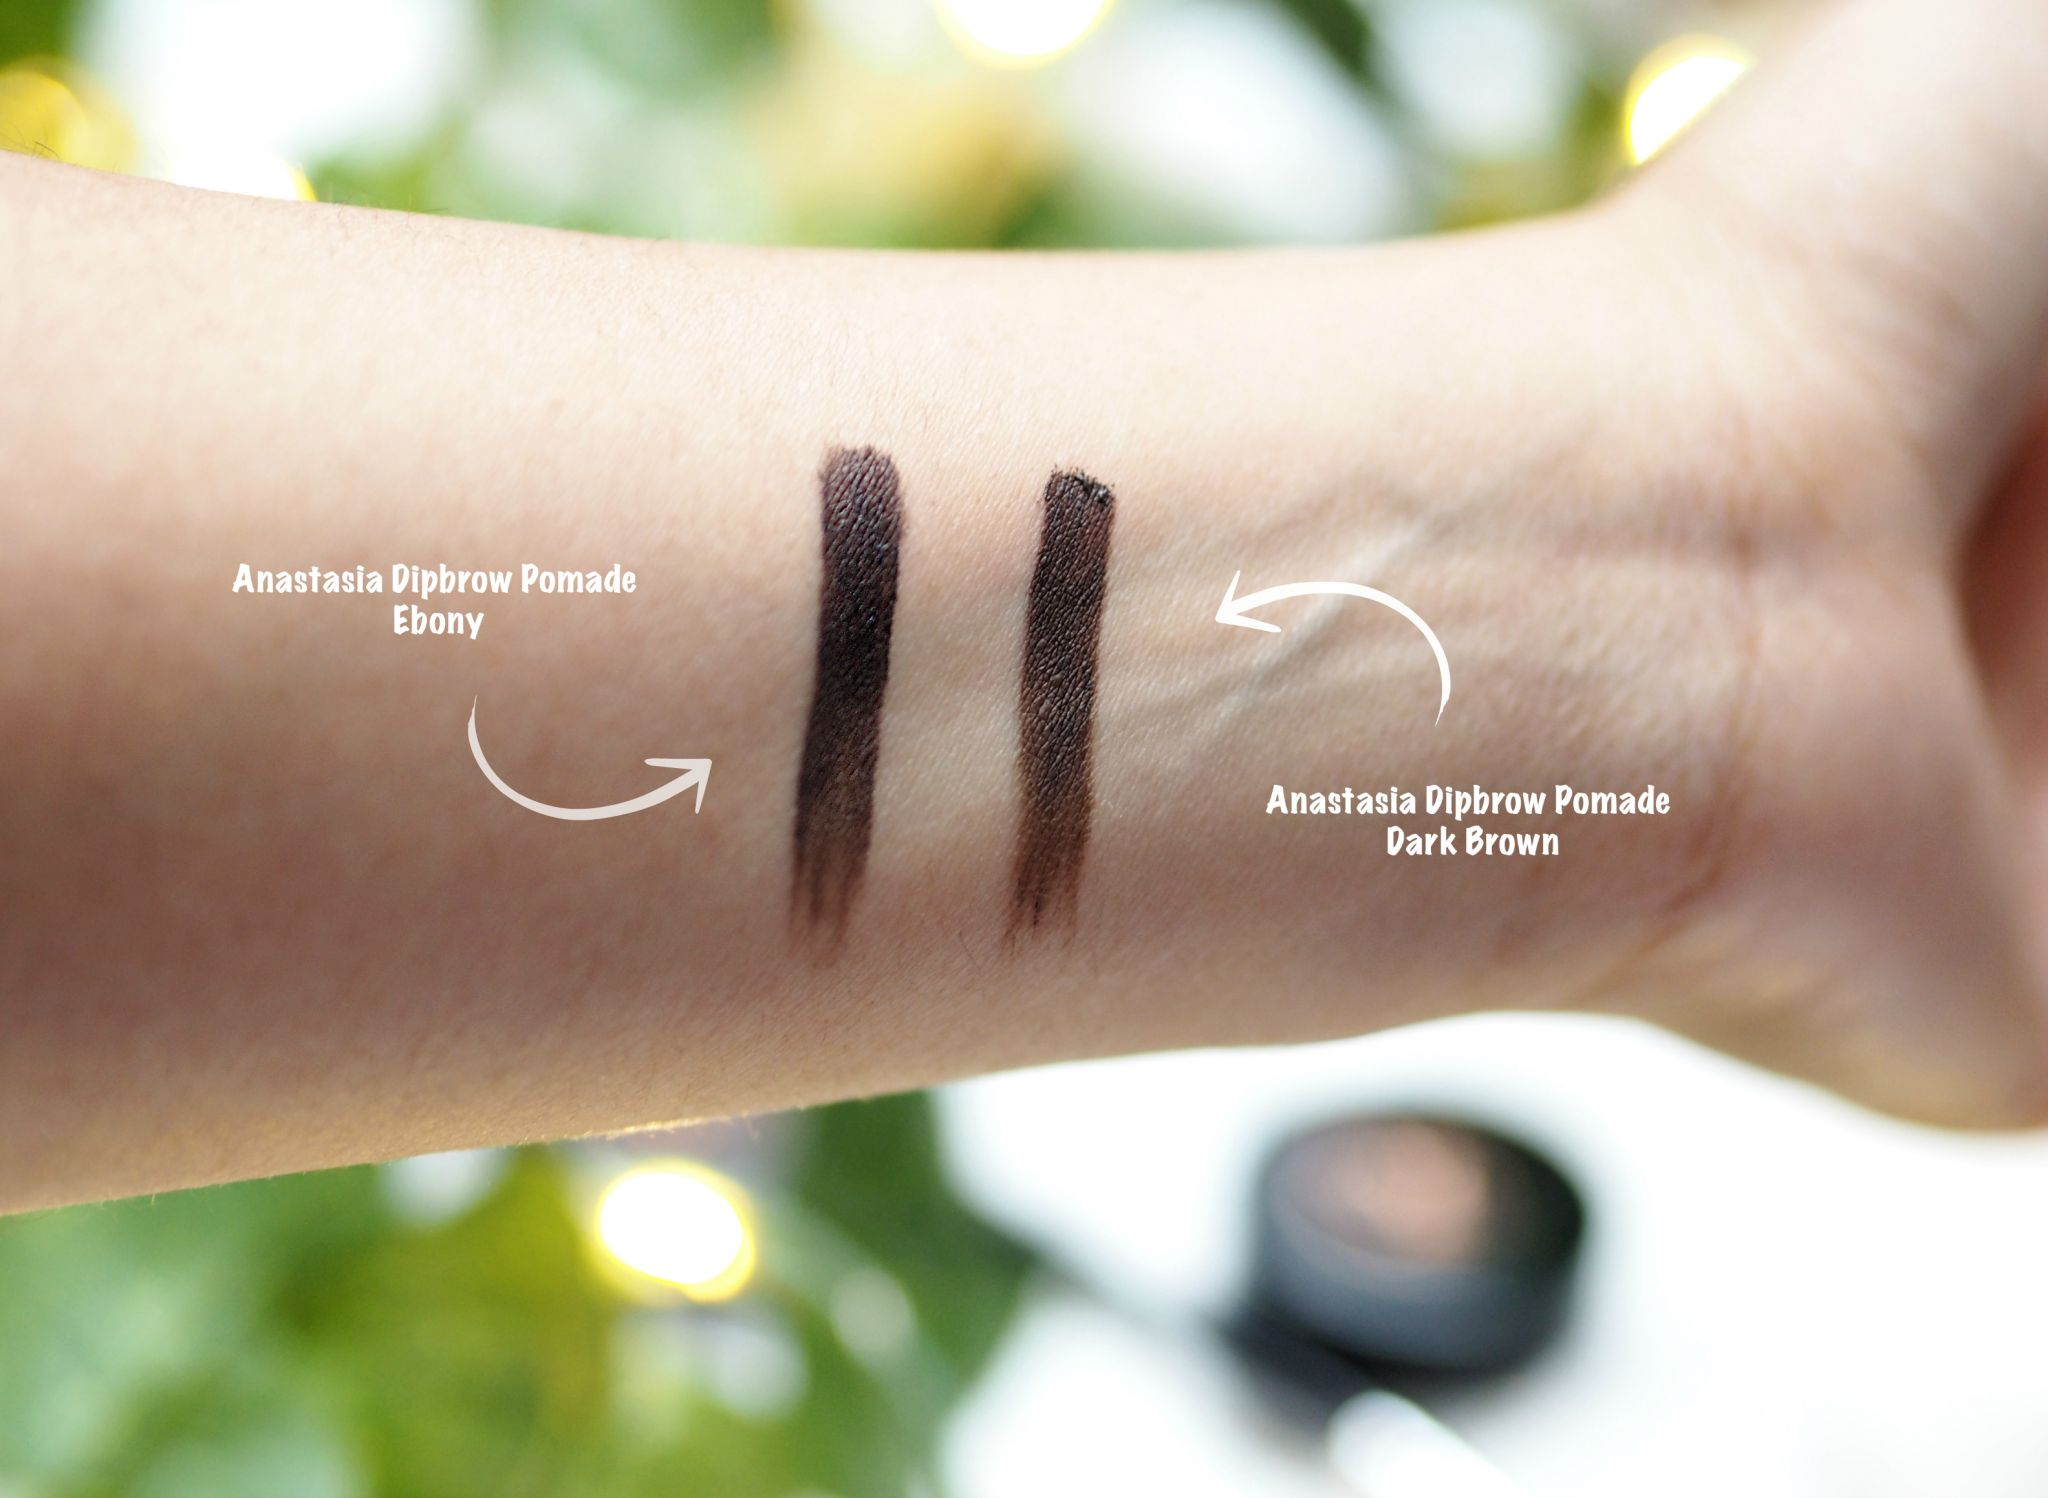 Anastasia Dipbrow Pomade Dark Brown or Ebony